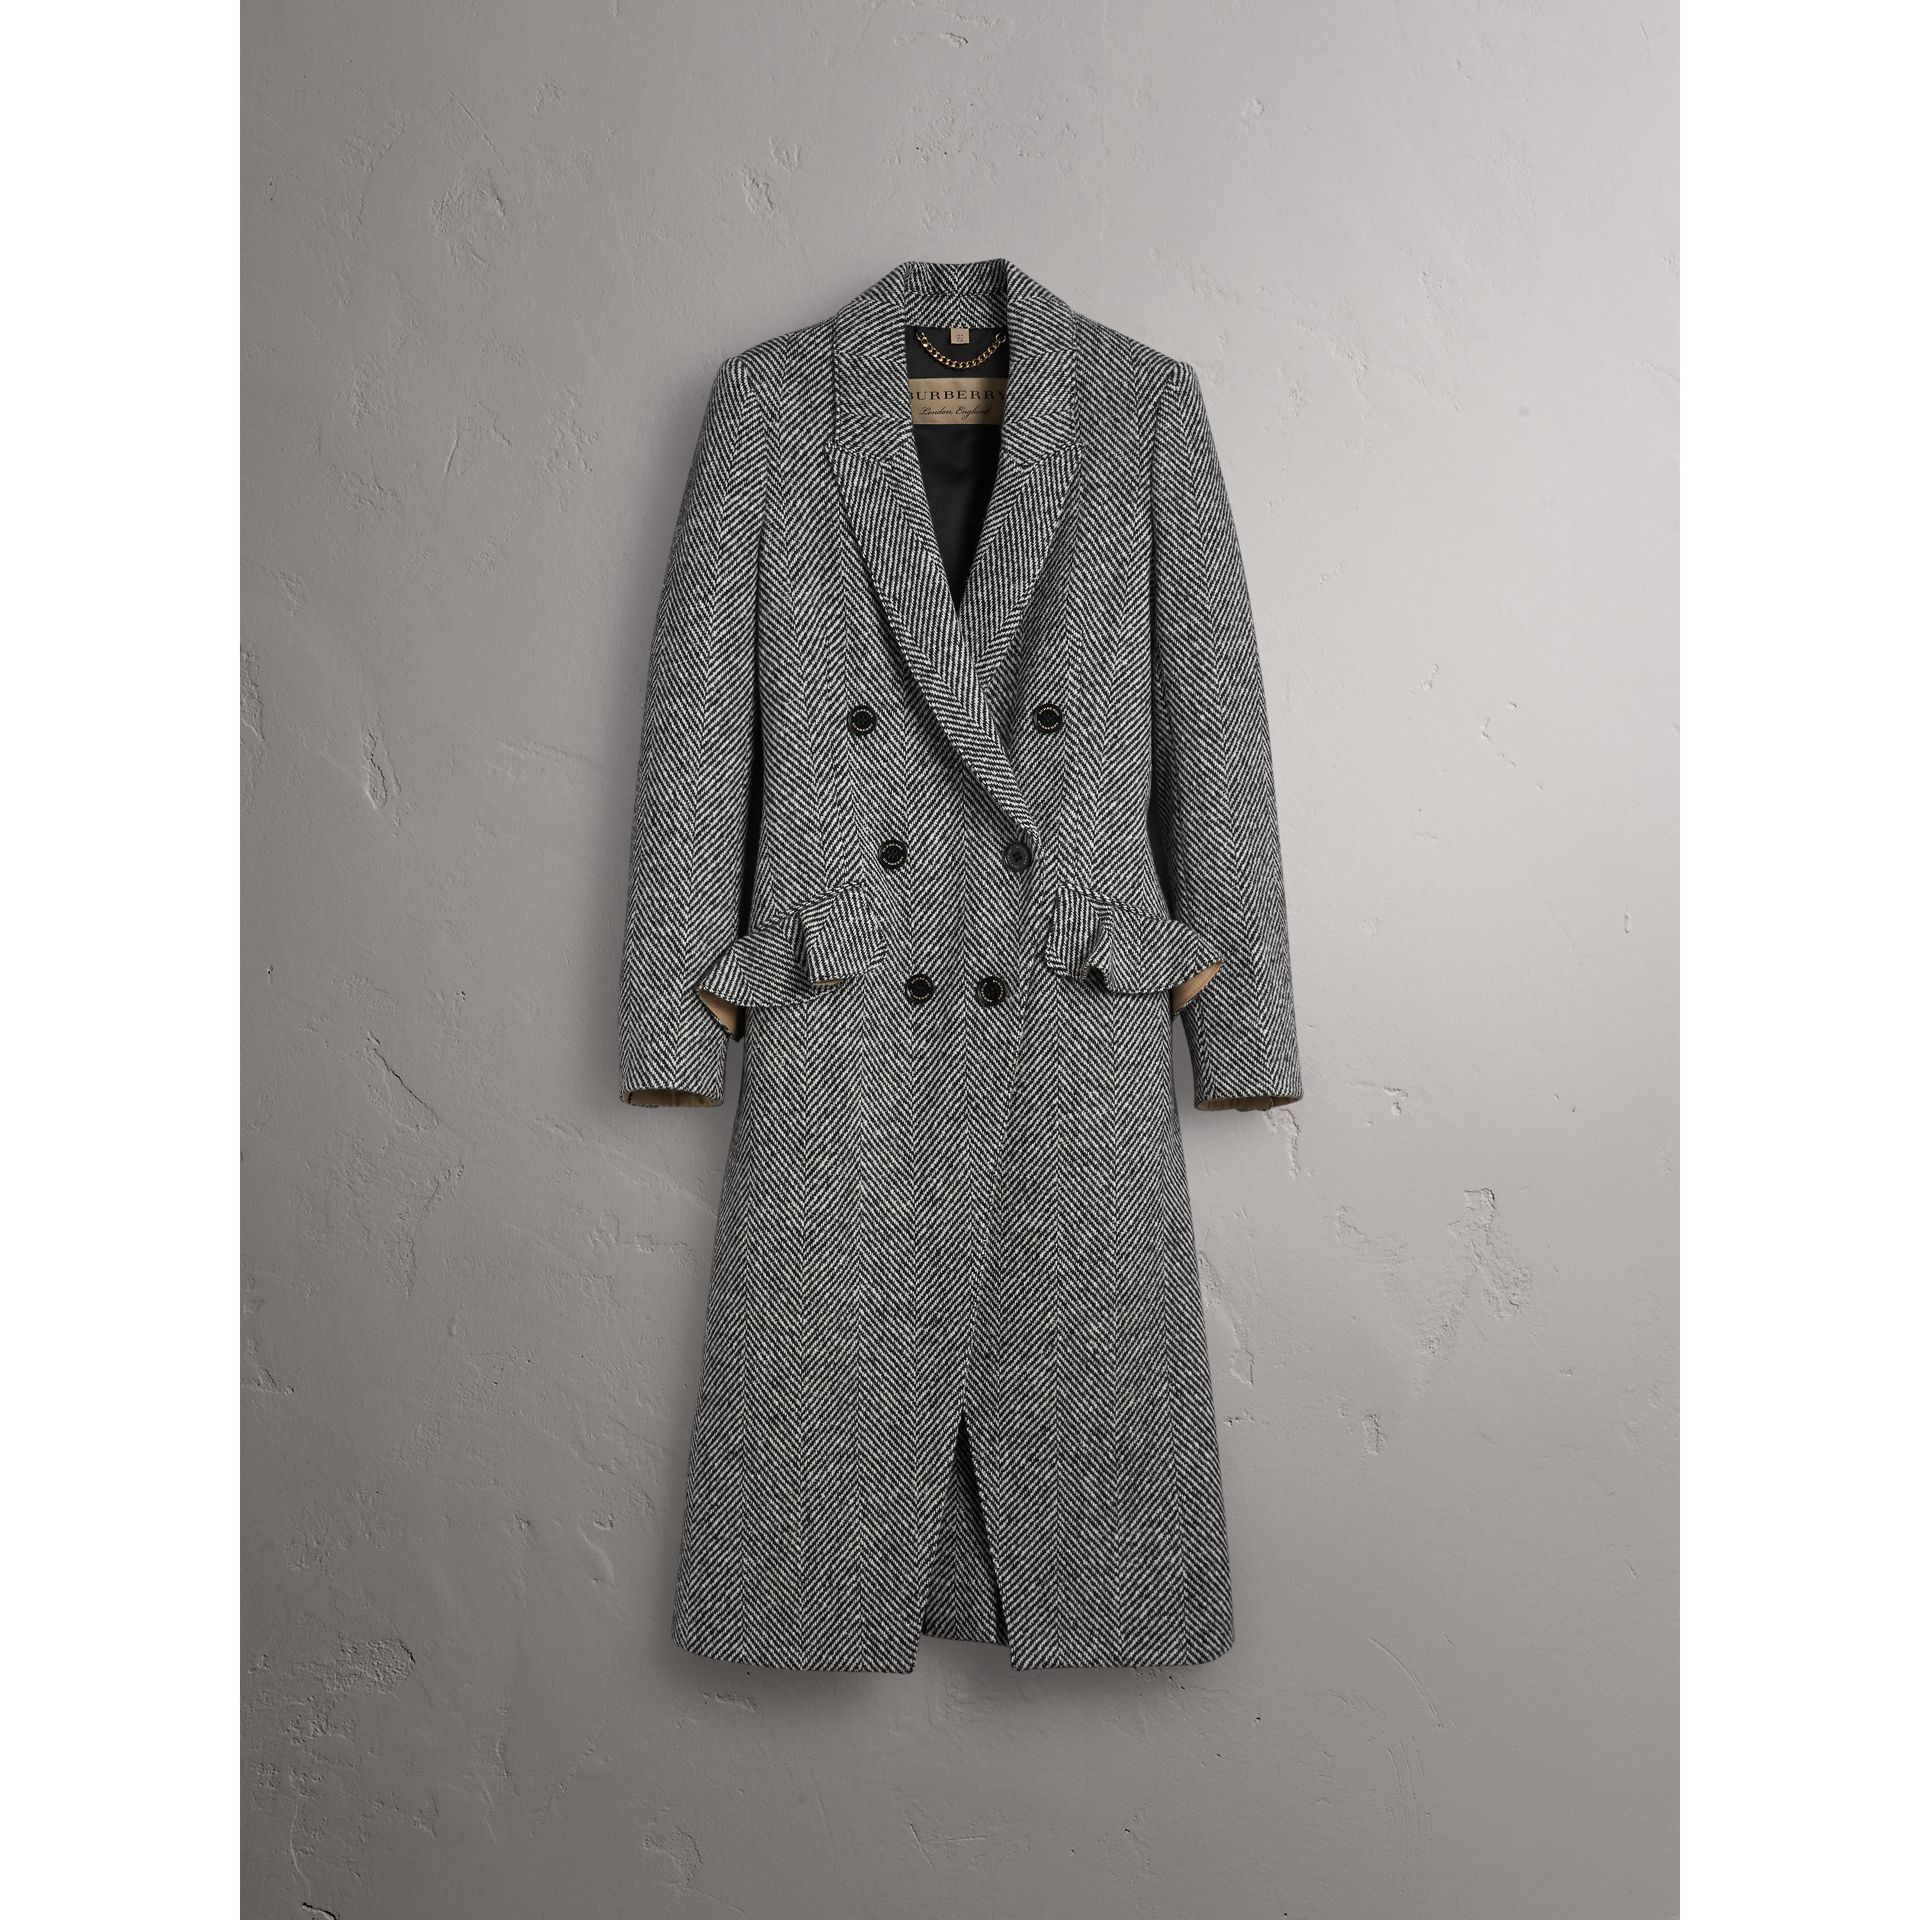 Donegal Herringbone Wool Tweed Tailored Coat - Women | Burberry Australia - gallery image 4